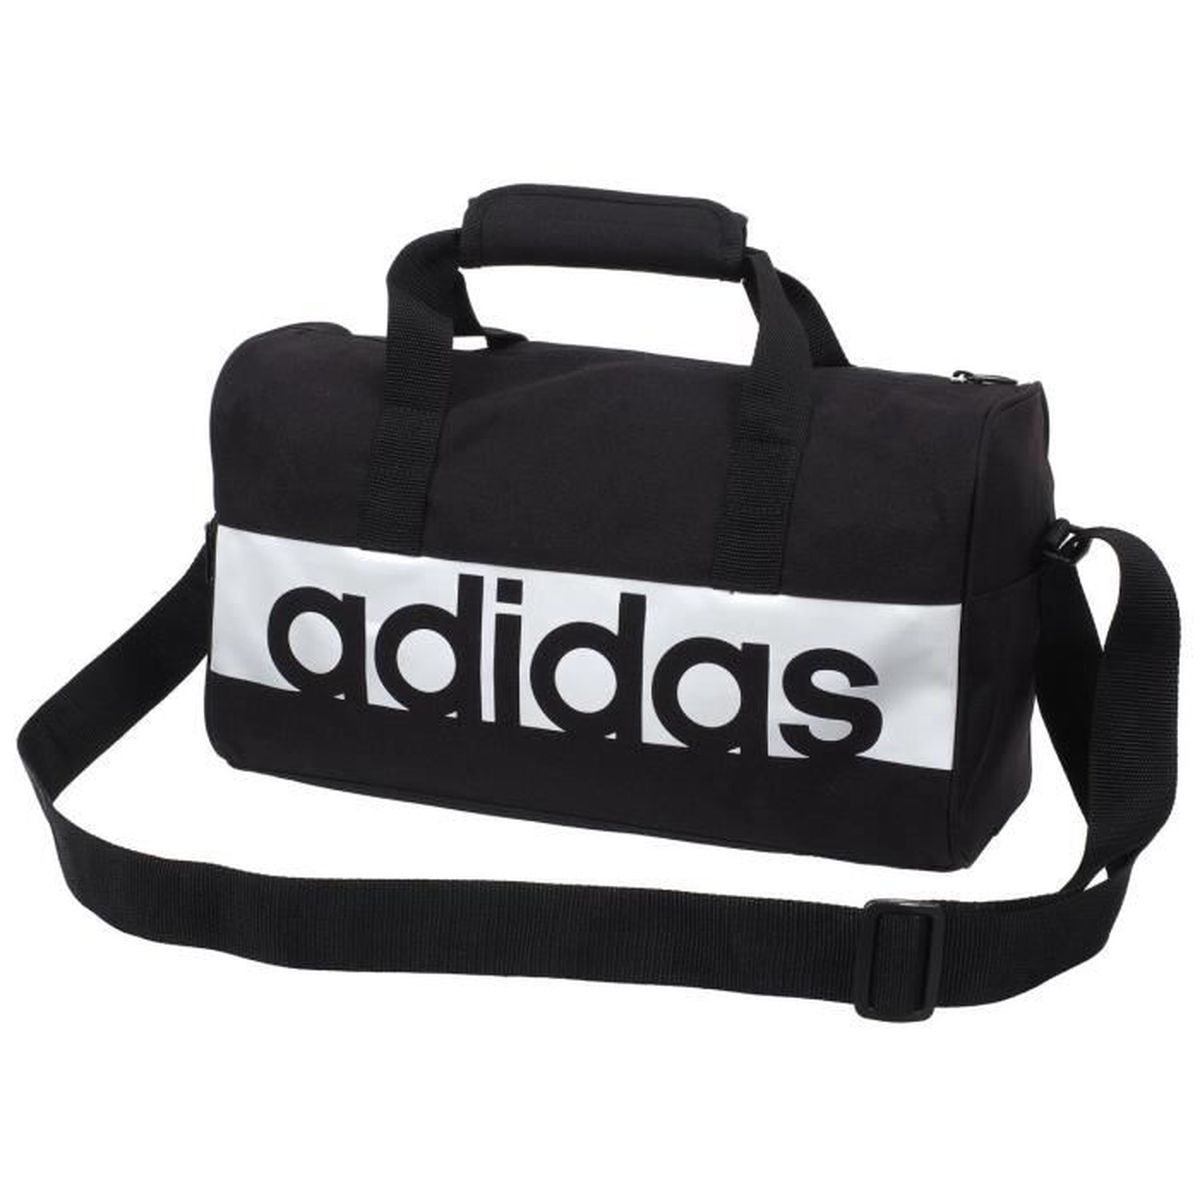 sac de sport adidas pas cher sac de sport homme adidas 3 stripes noir et bleu nike team sac sport ho. Black Bedroom Furniture Sets. Home Design Ideas